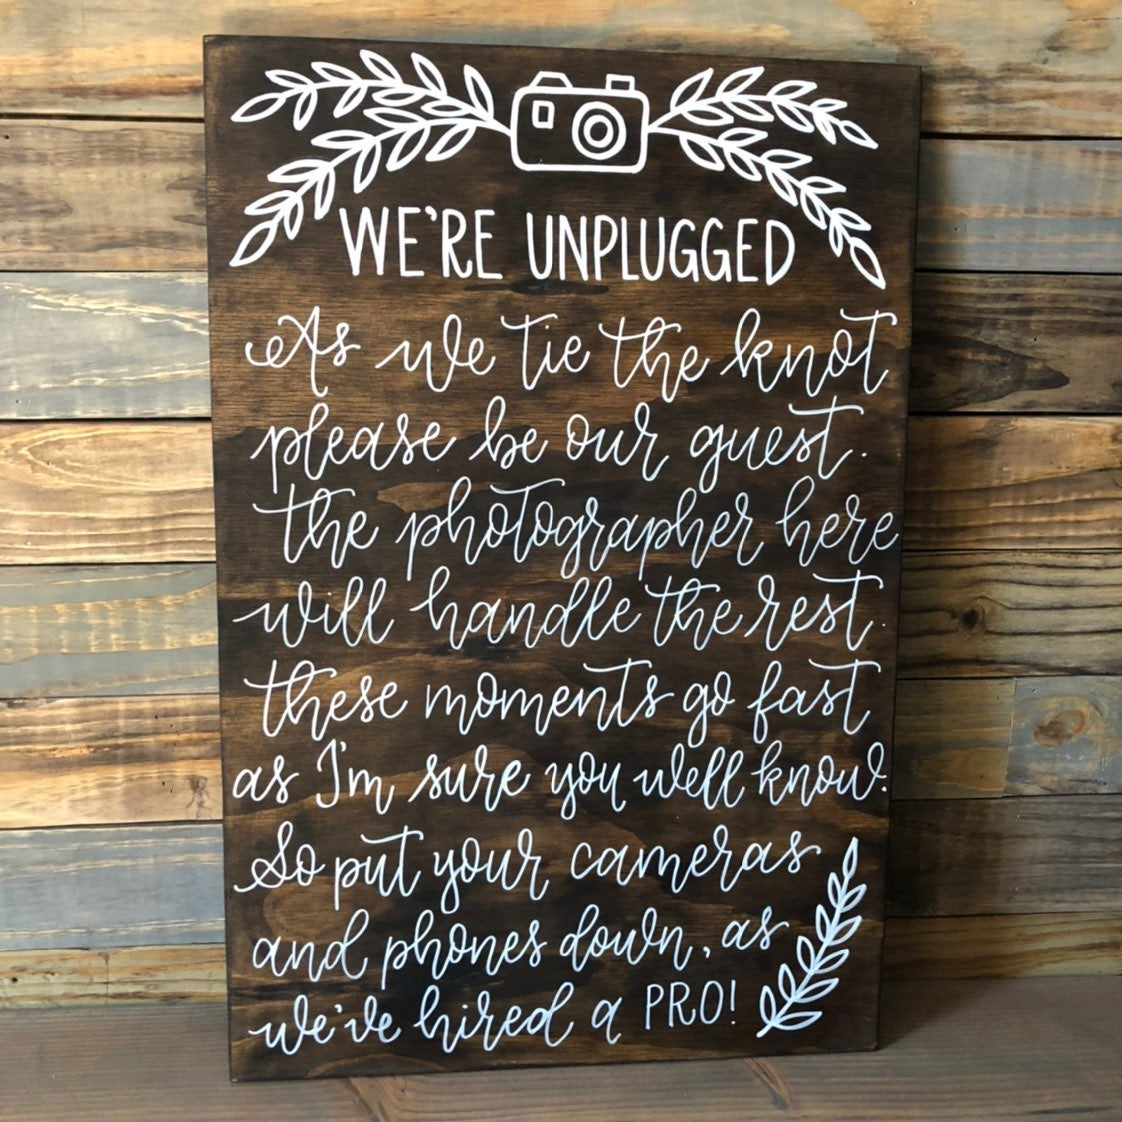 We're unplugged, wedding wood sign